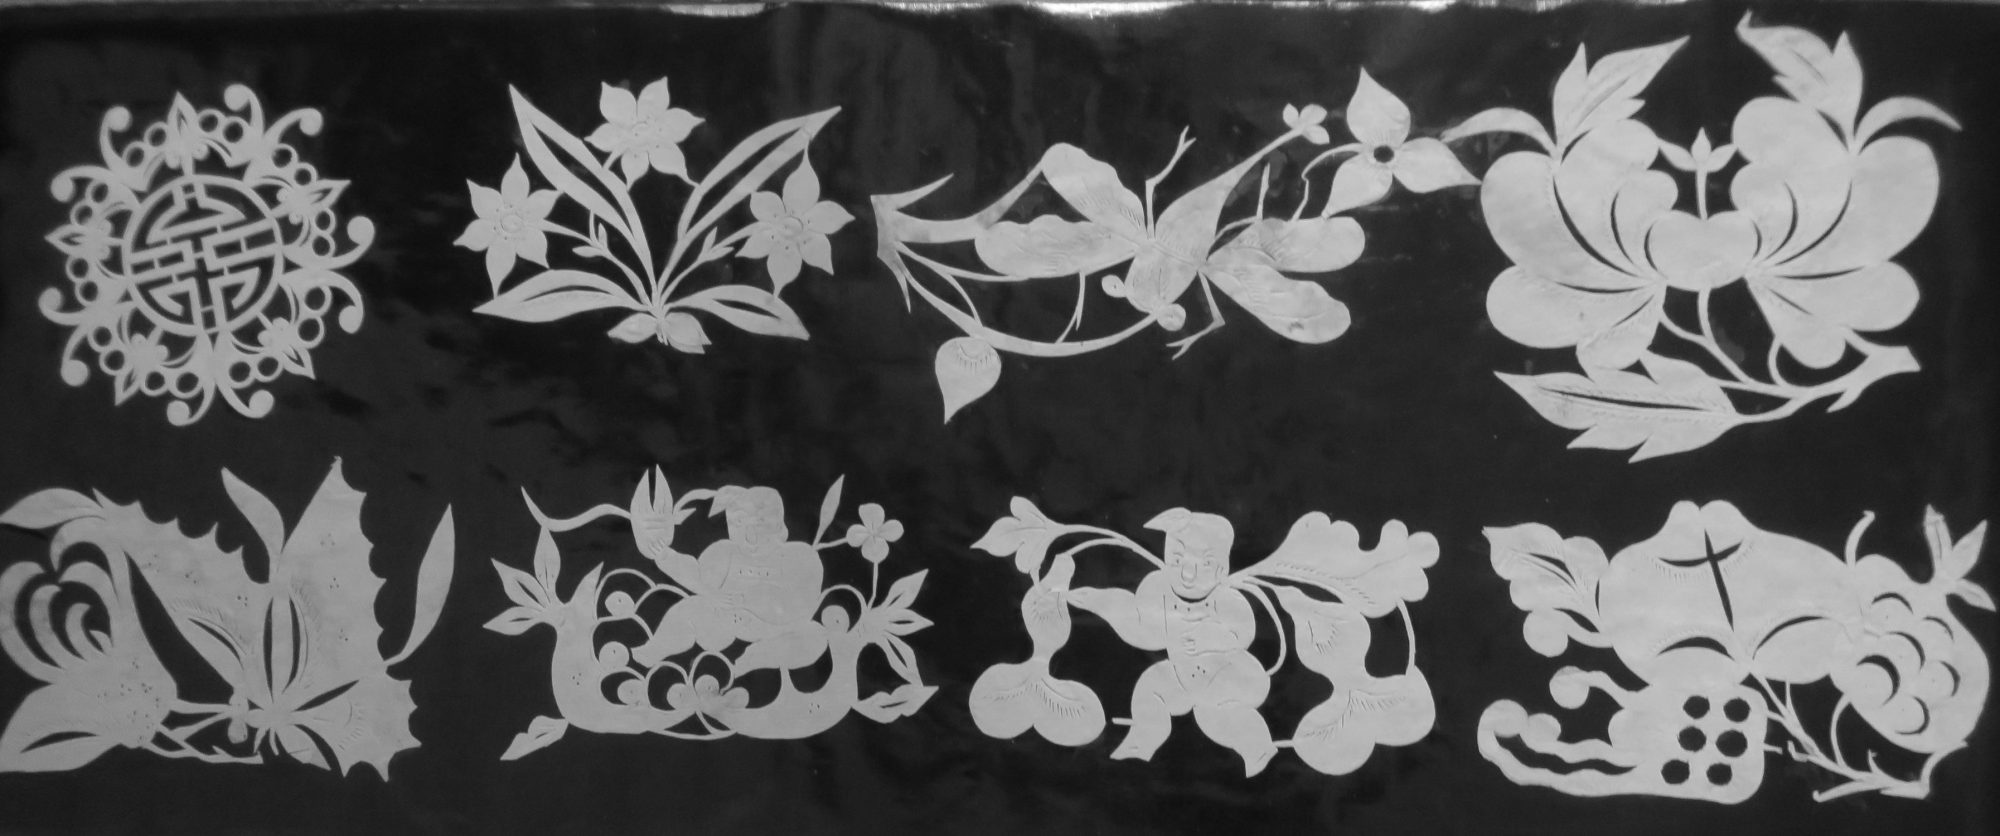 Papercuts probably from Yunnan, 38 x 16 cm.